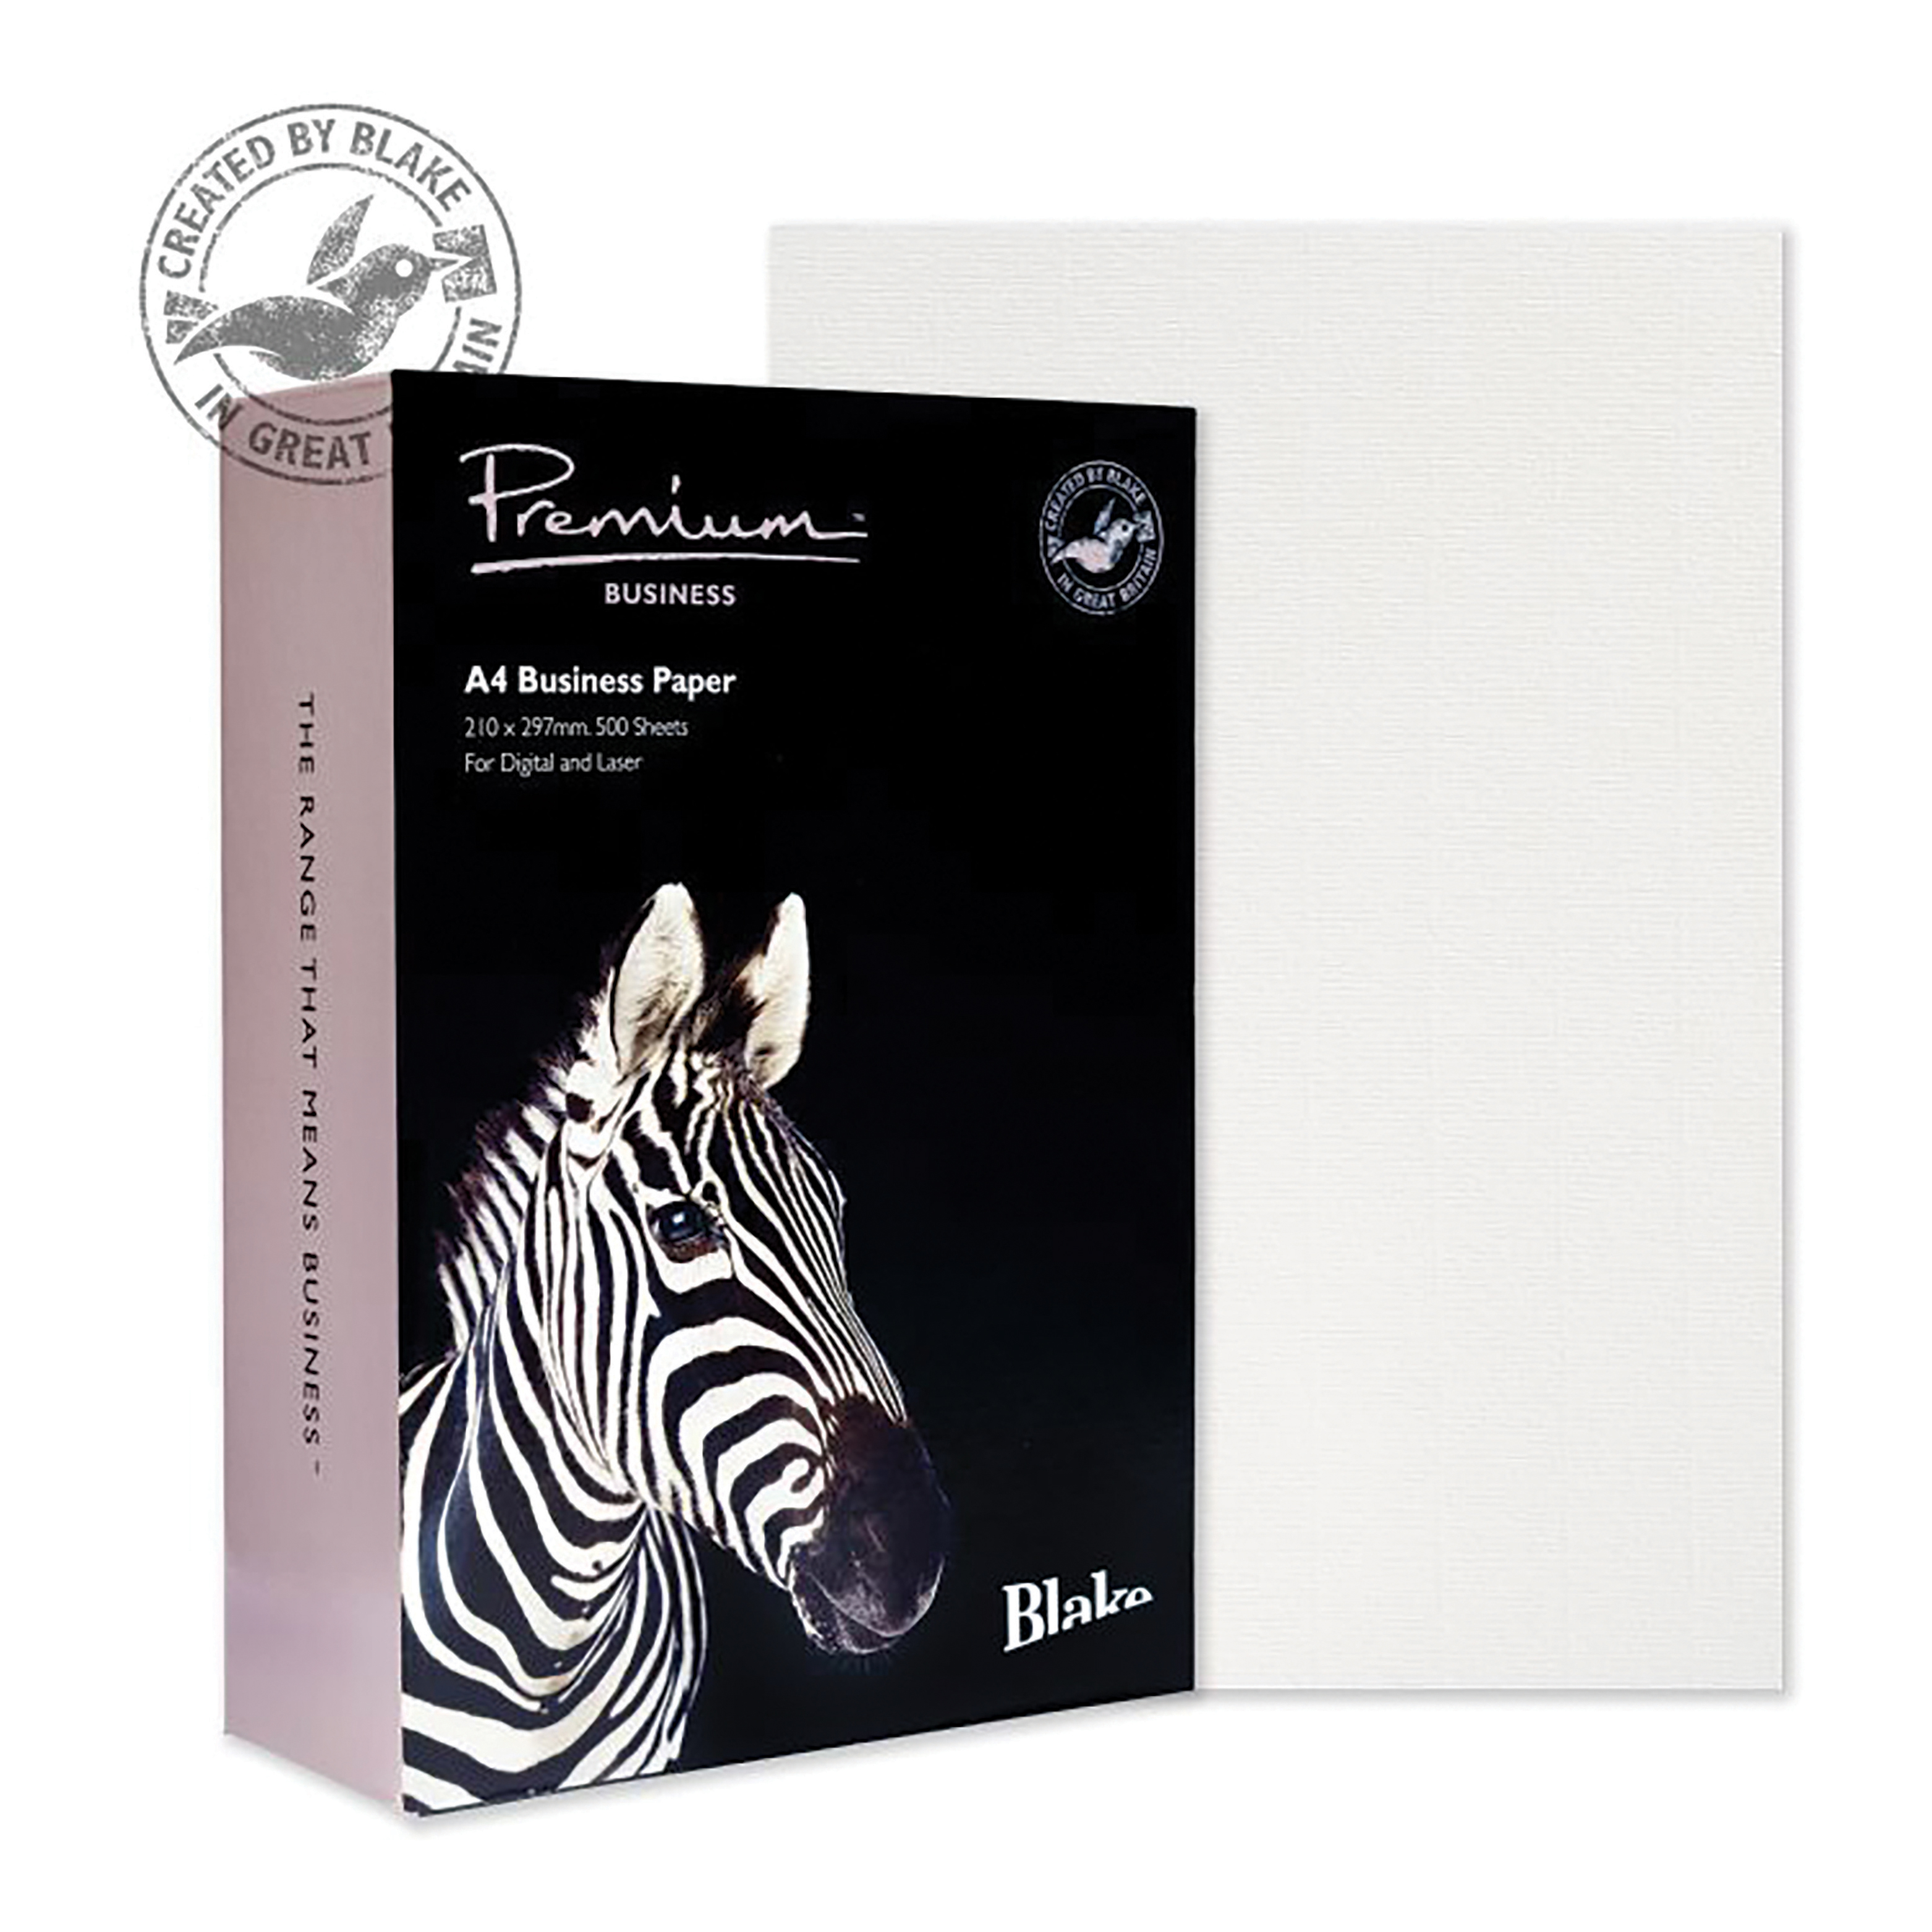 Blake Premium FSC Business Paper Laid Finish 120gsm A4 Diamond White Ref 91677 [Pack 500]